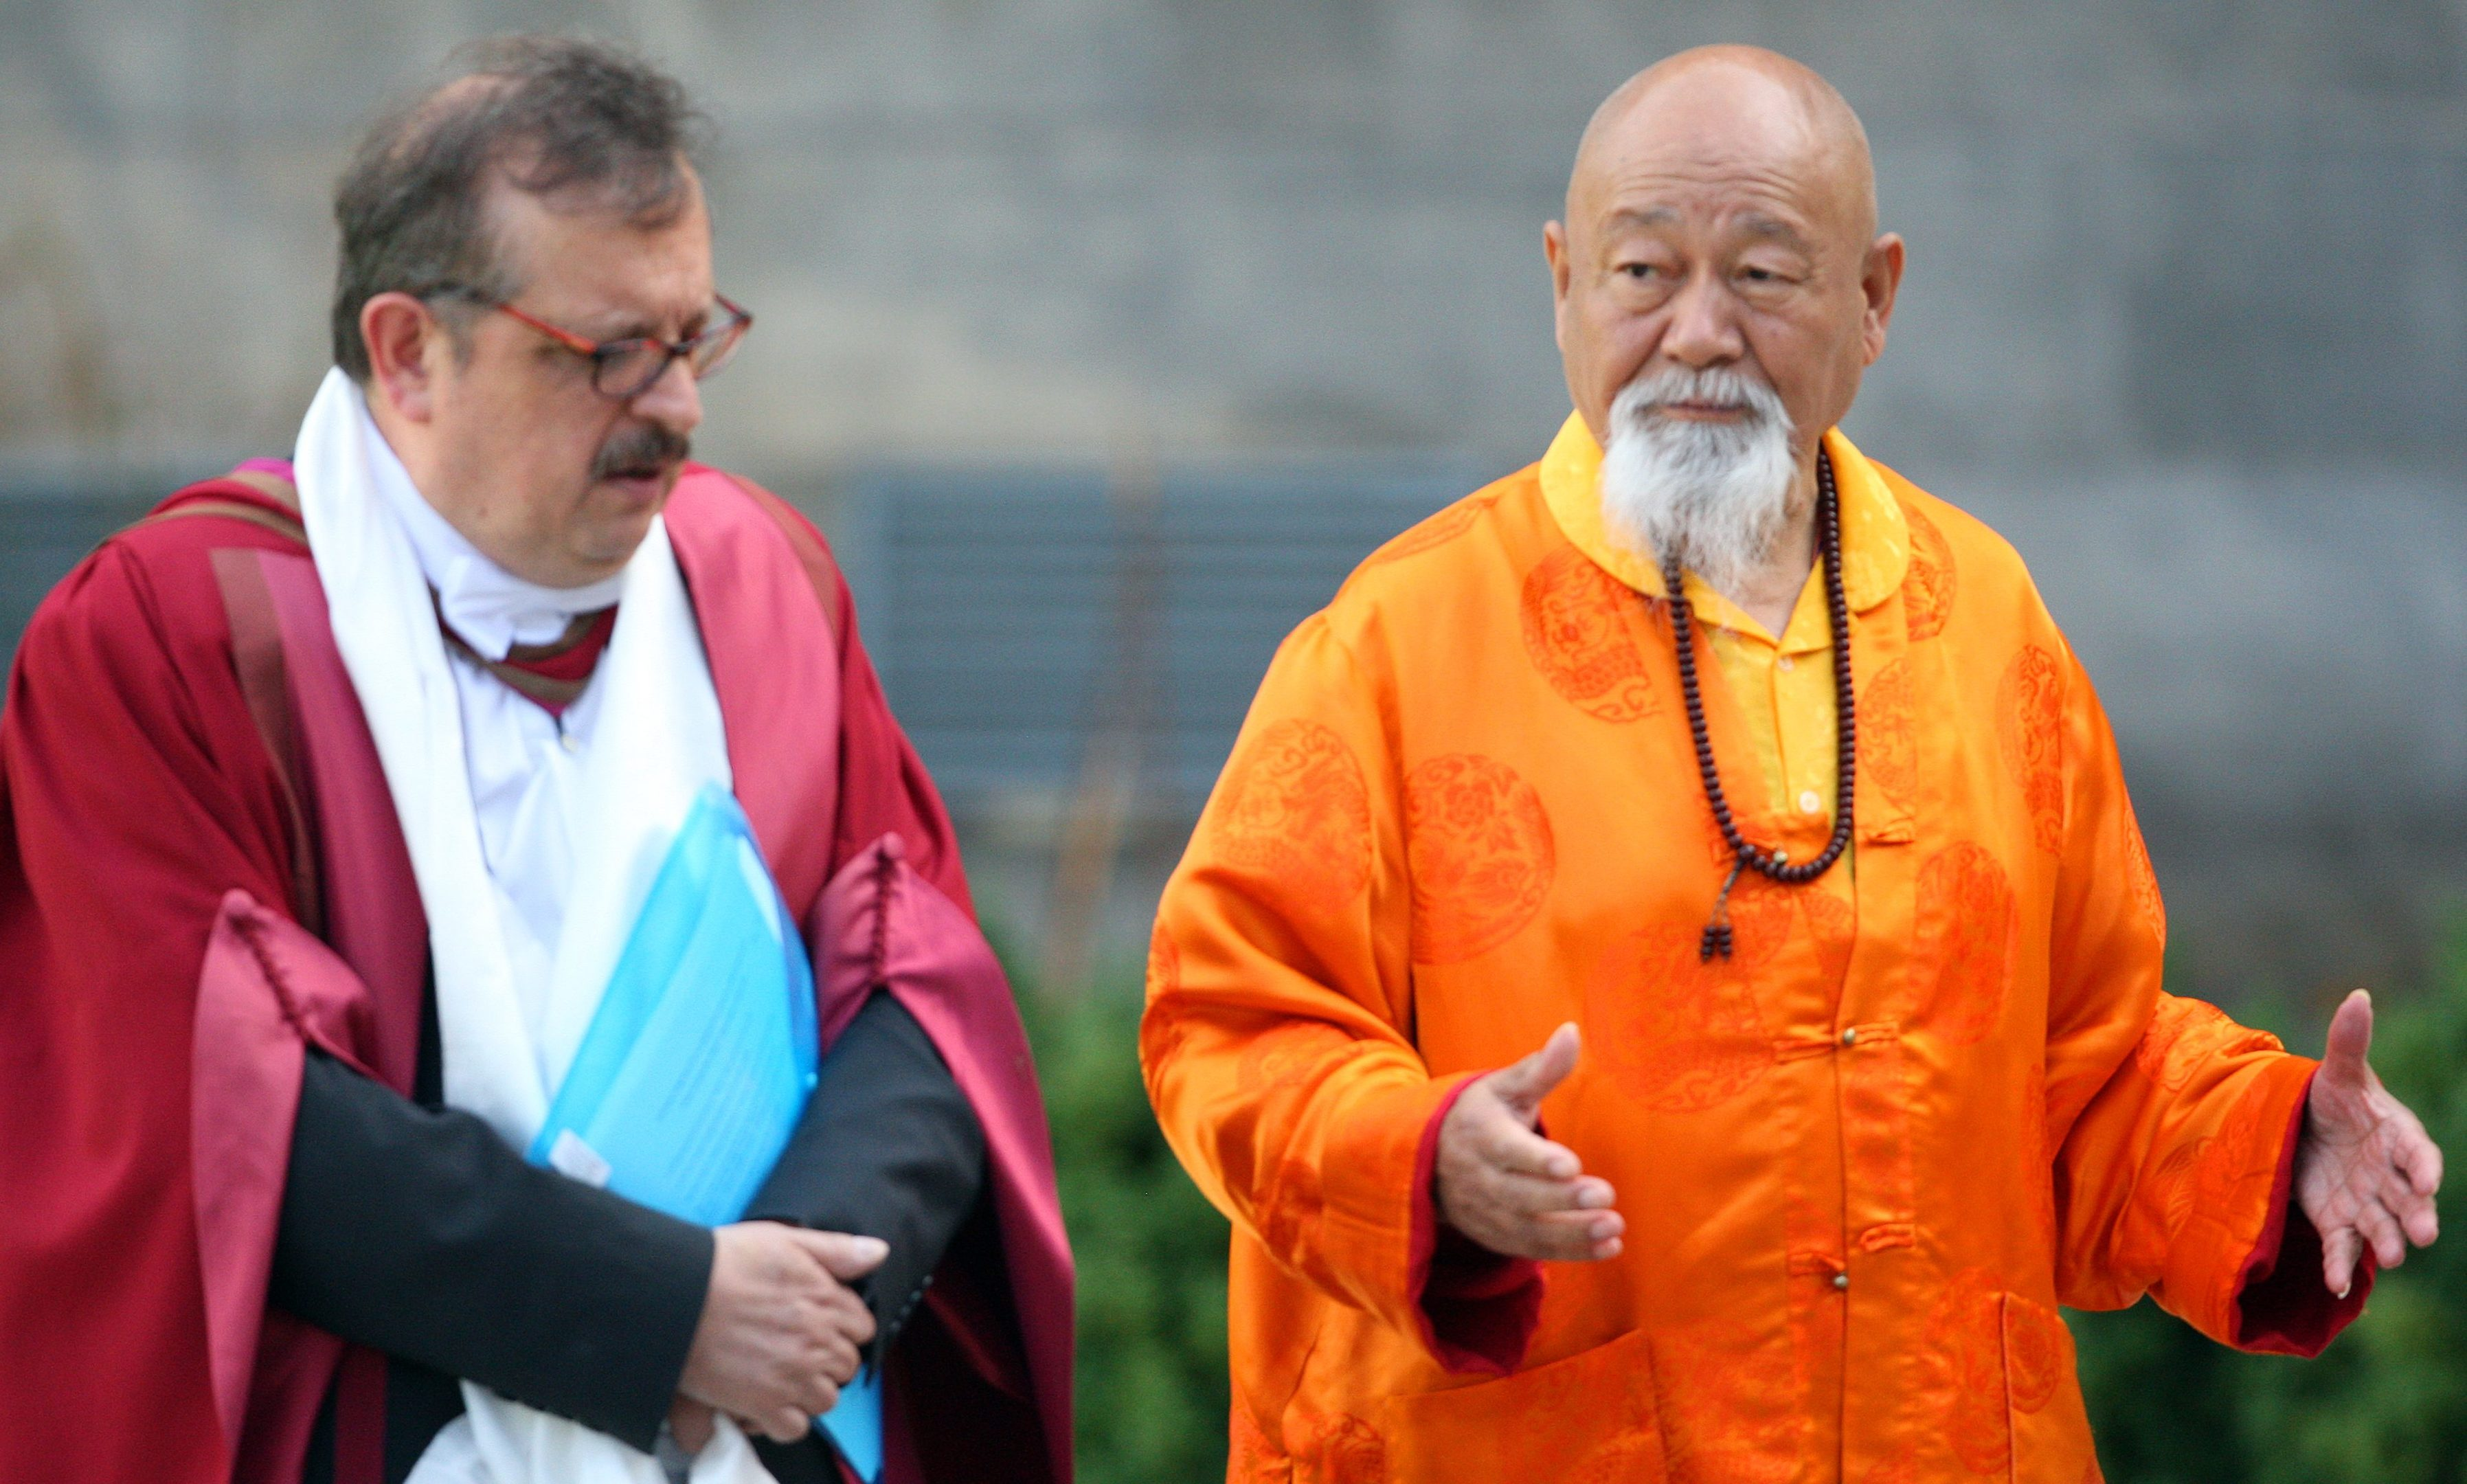 Professor of Divinity Mario Aguilar talking to Abbot Lama Yeshe Rinpoche in St Salvator's Quadrangle.